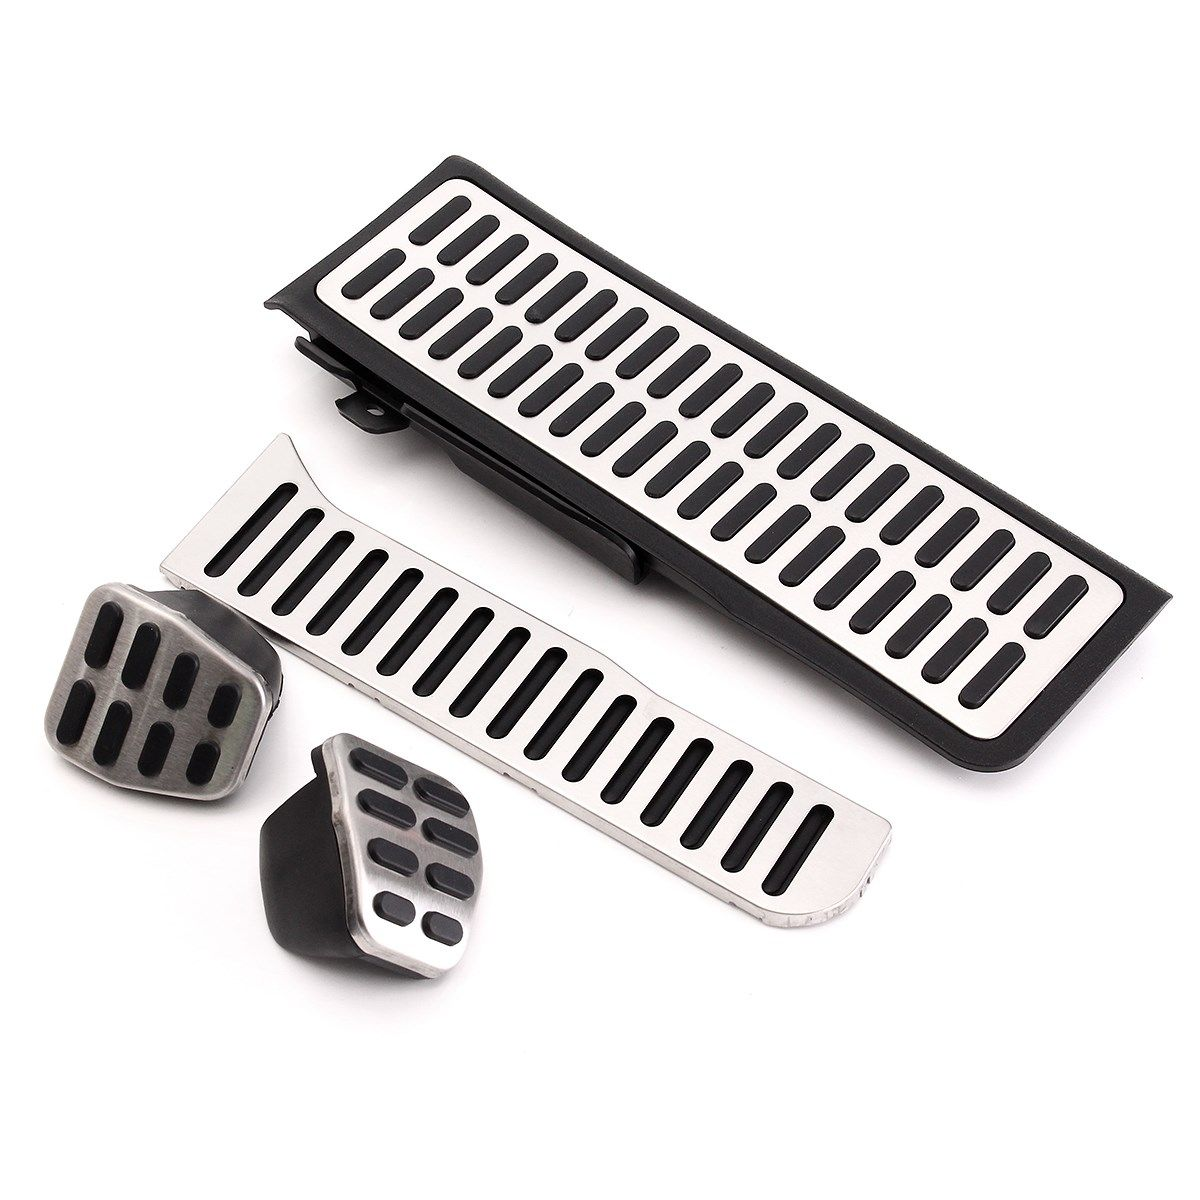 4pcs LHD Clutch Fuel Brake Foot Rest MT Pedals Pads Set For VW Jetta MK5 Golf MK6 Vento Sagitar 2008-2013 2005-2010